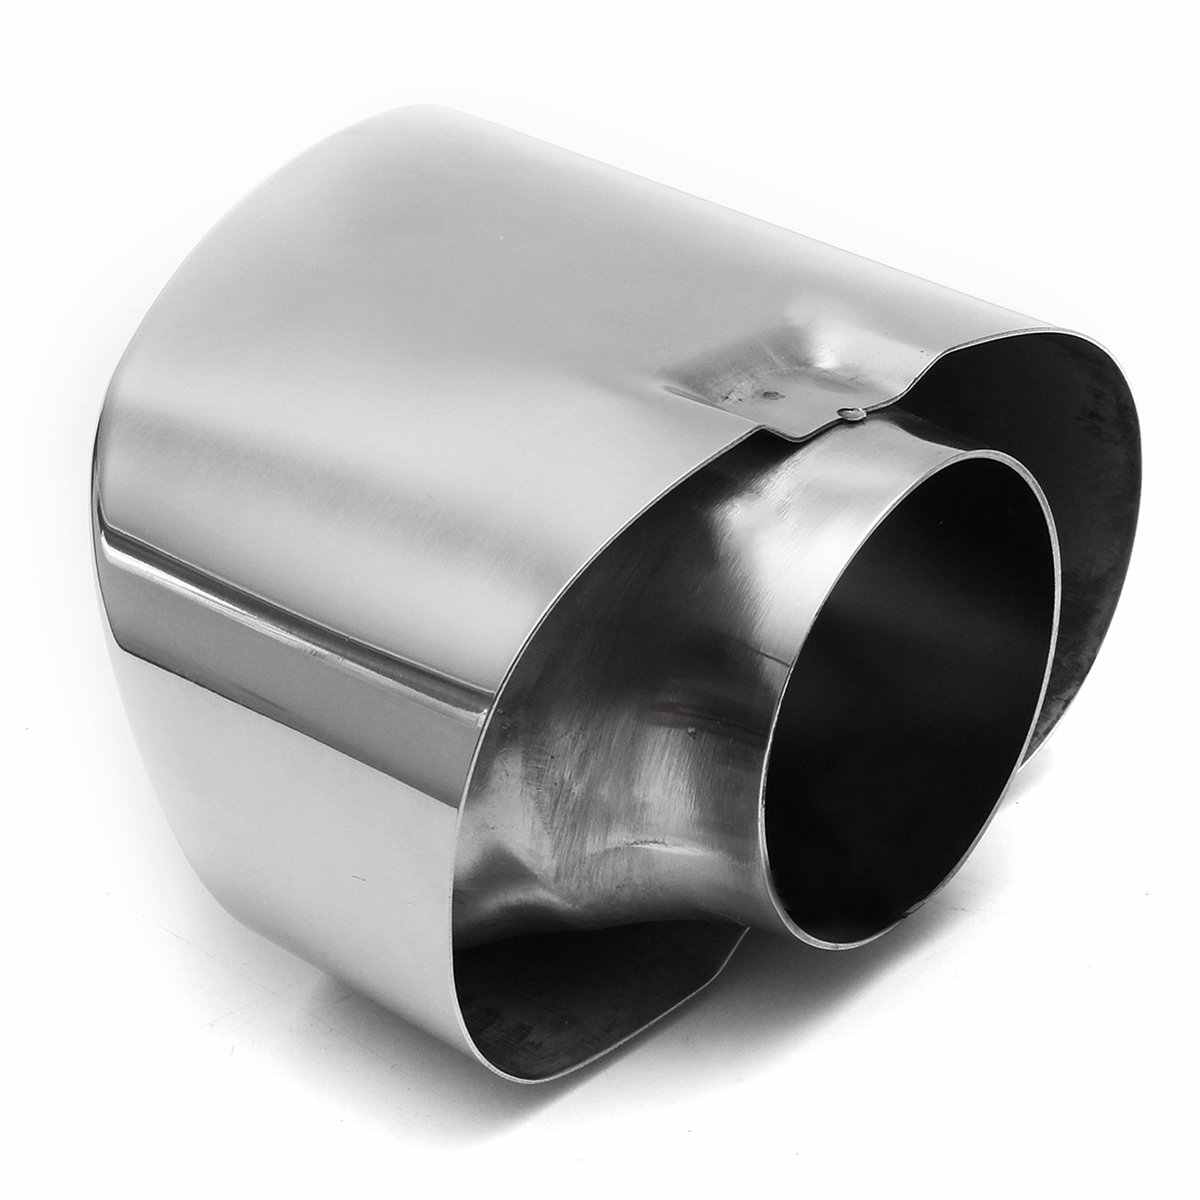 MIOAHD Chrome Exhaust Dual Tail Pipe Muffler Tip Stainless Steel,Fit for BMW X5 E70 2008 2009 2010 2011 2012 2013